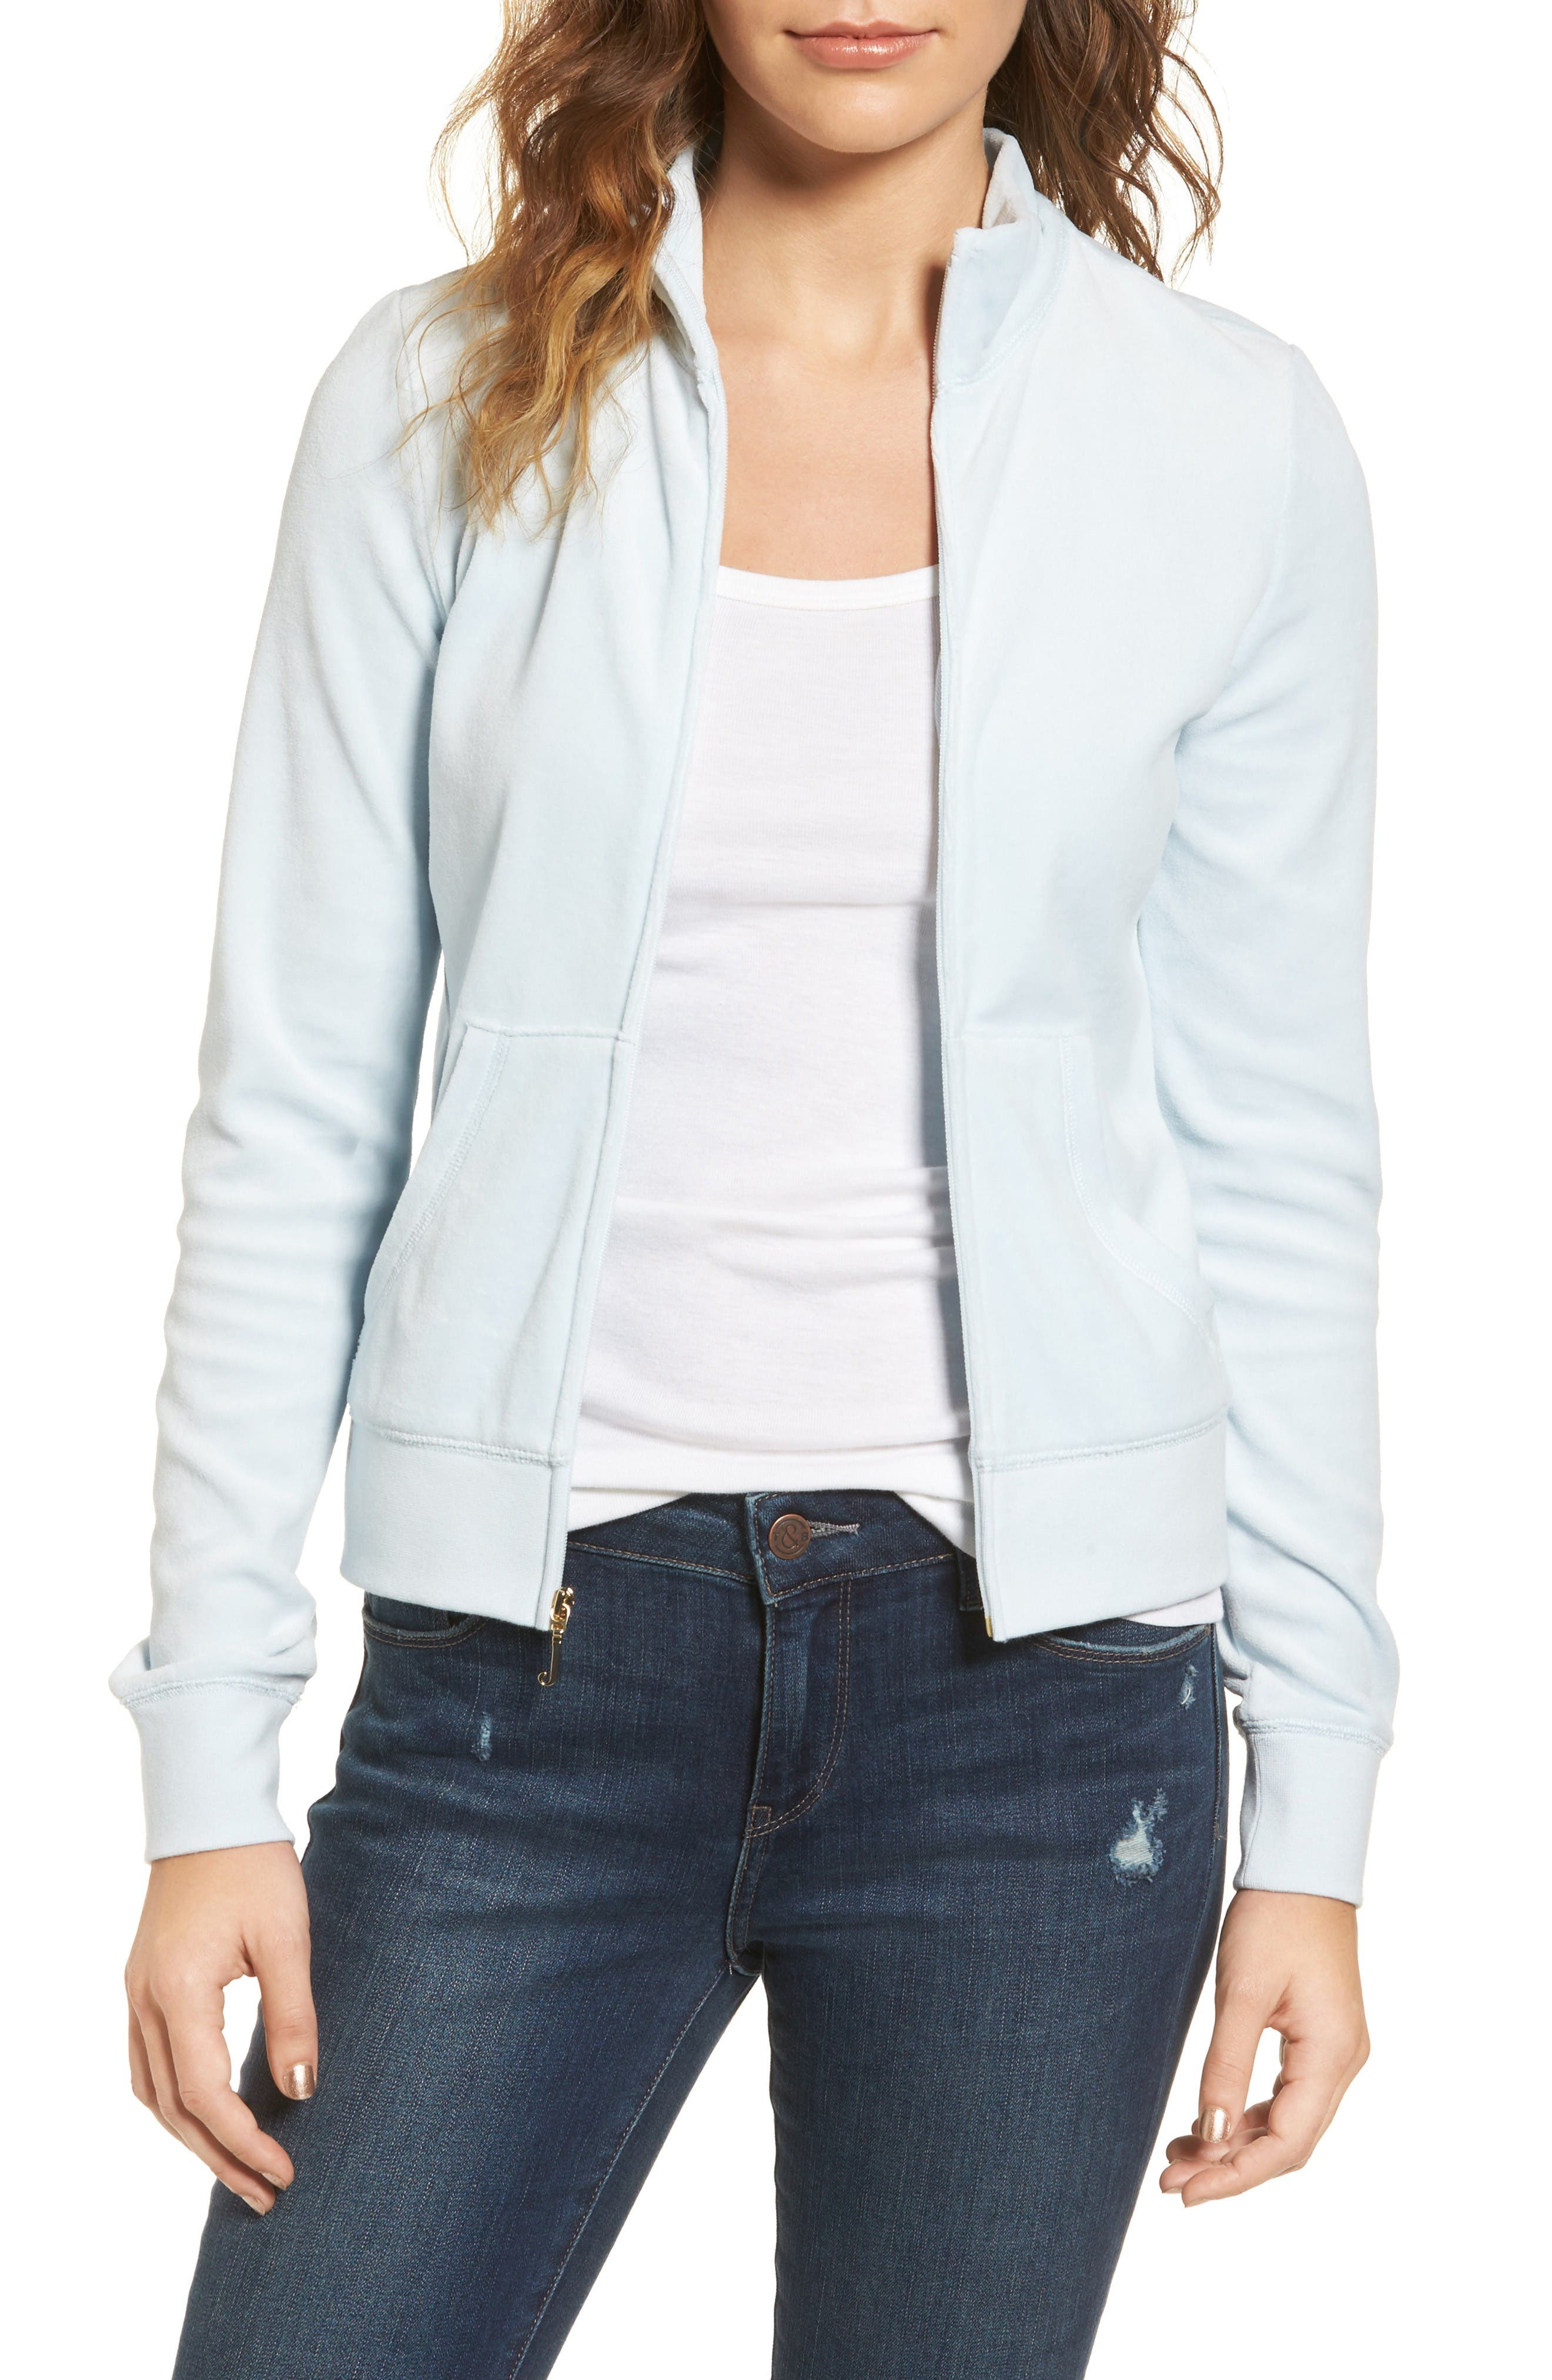 Alternate Image 1 Selected - Juicy Couture Fairfax Velour Track Jacket